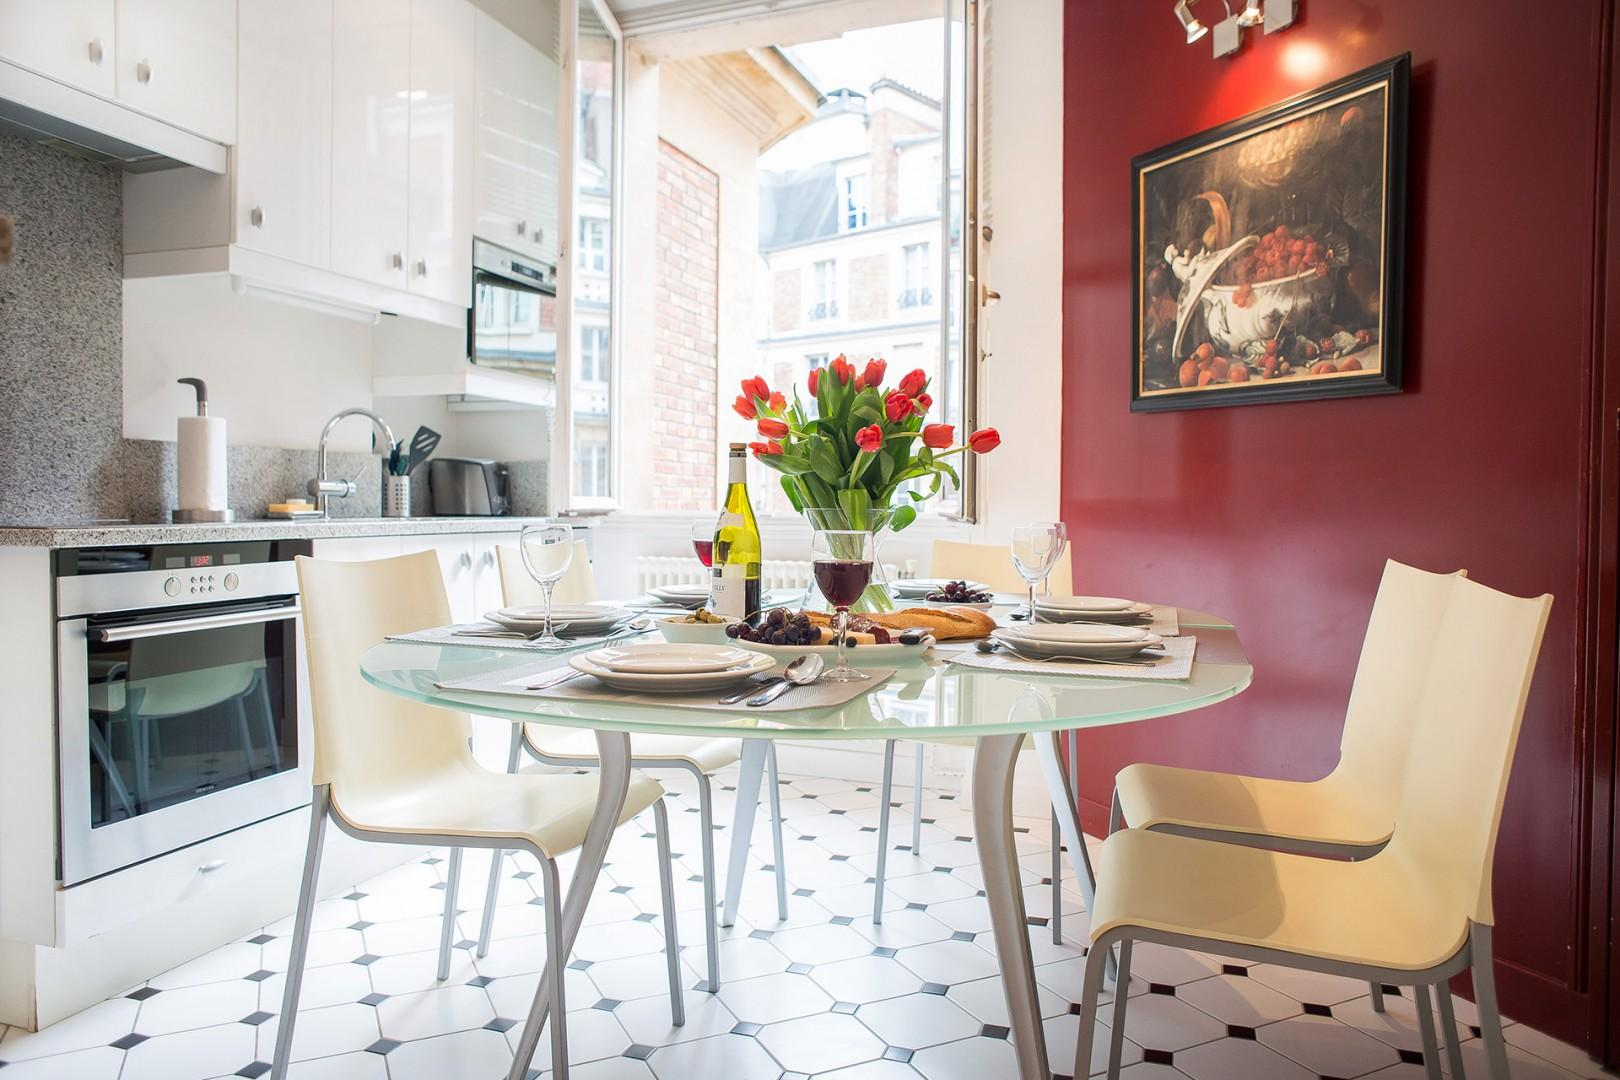 Enjoy elegant meals or casual gatherings in the dining area.